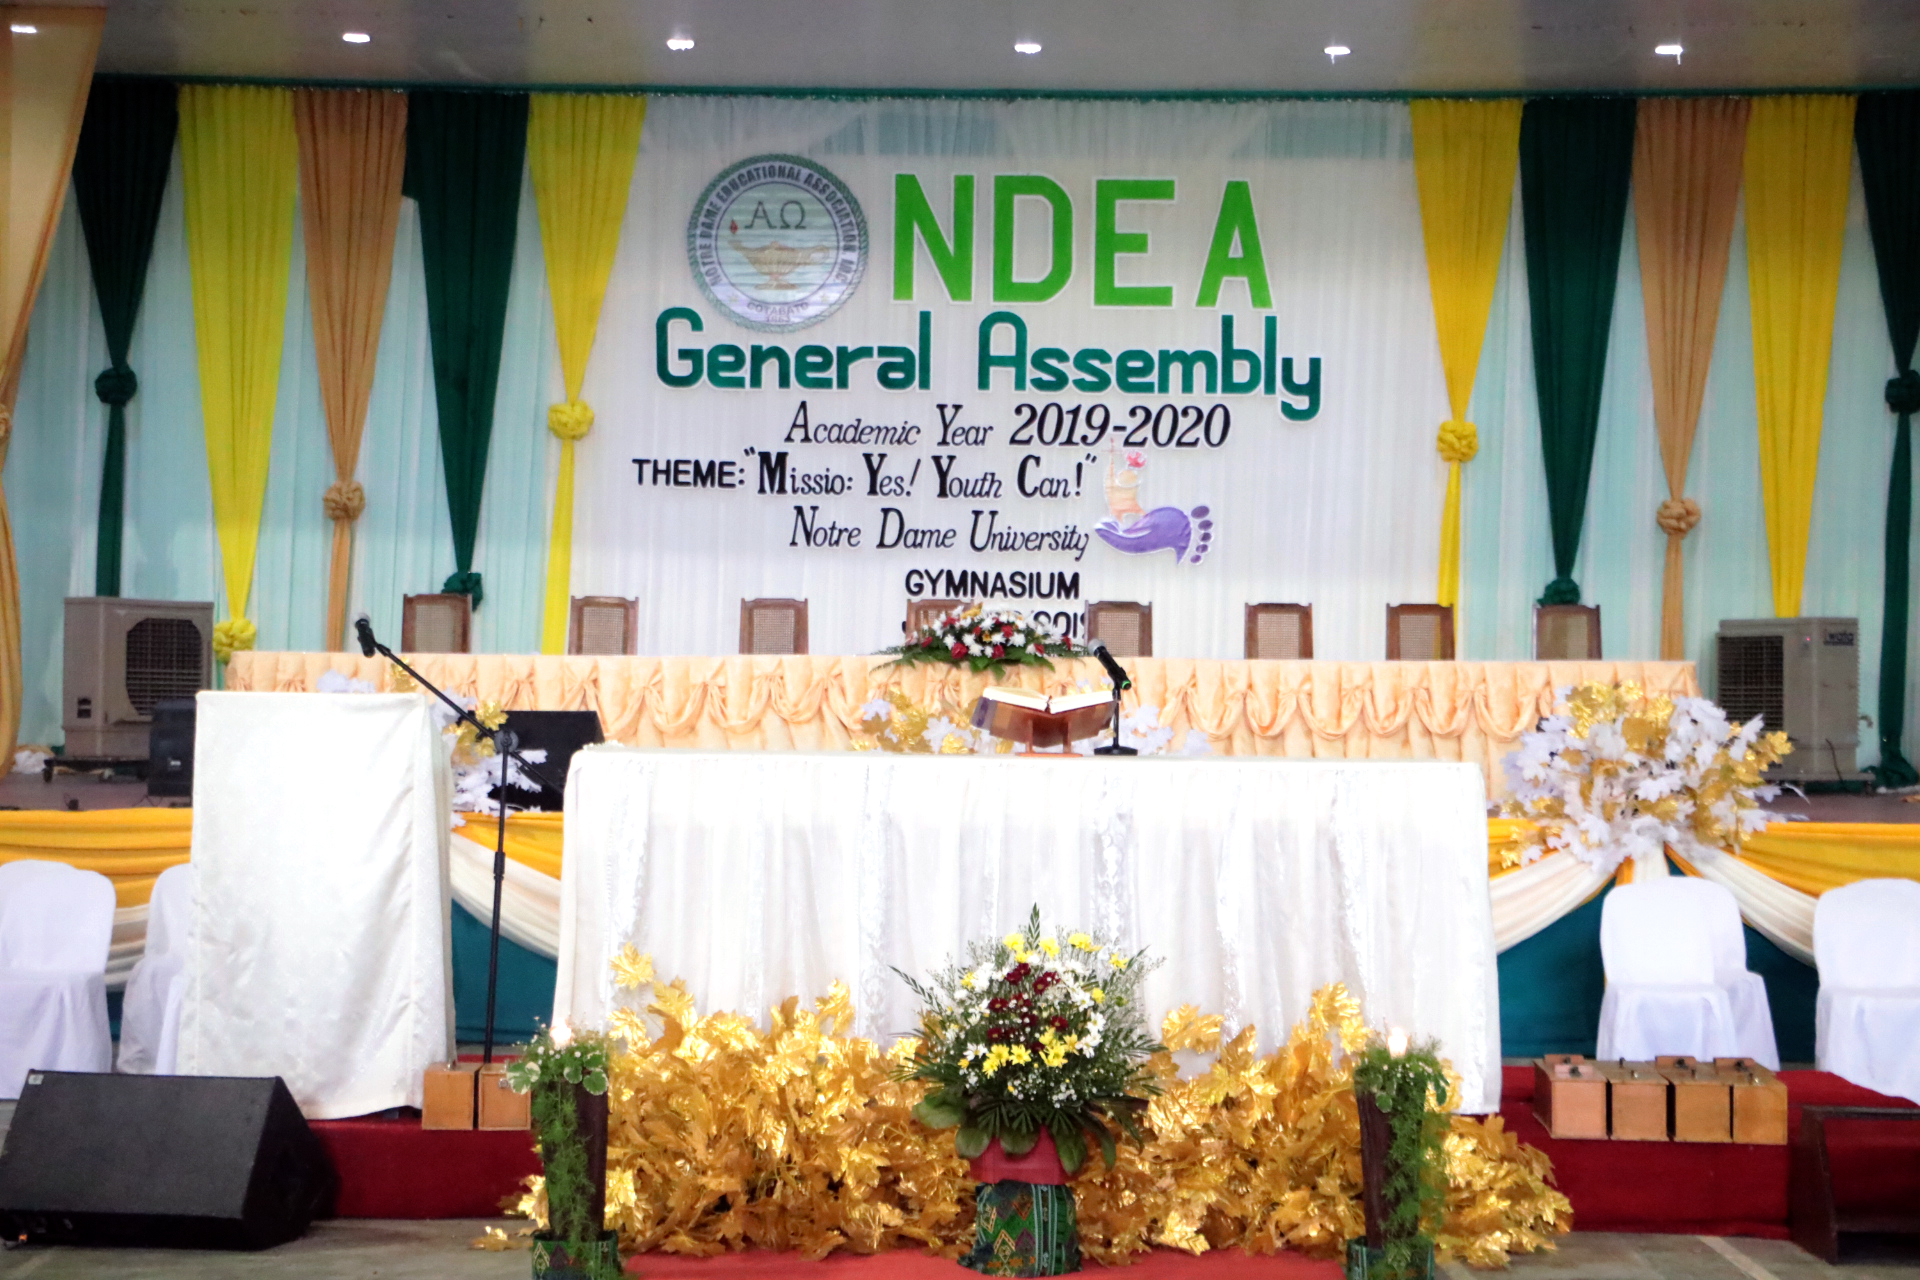 NDEA General Assembly